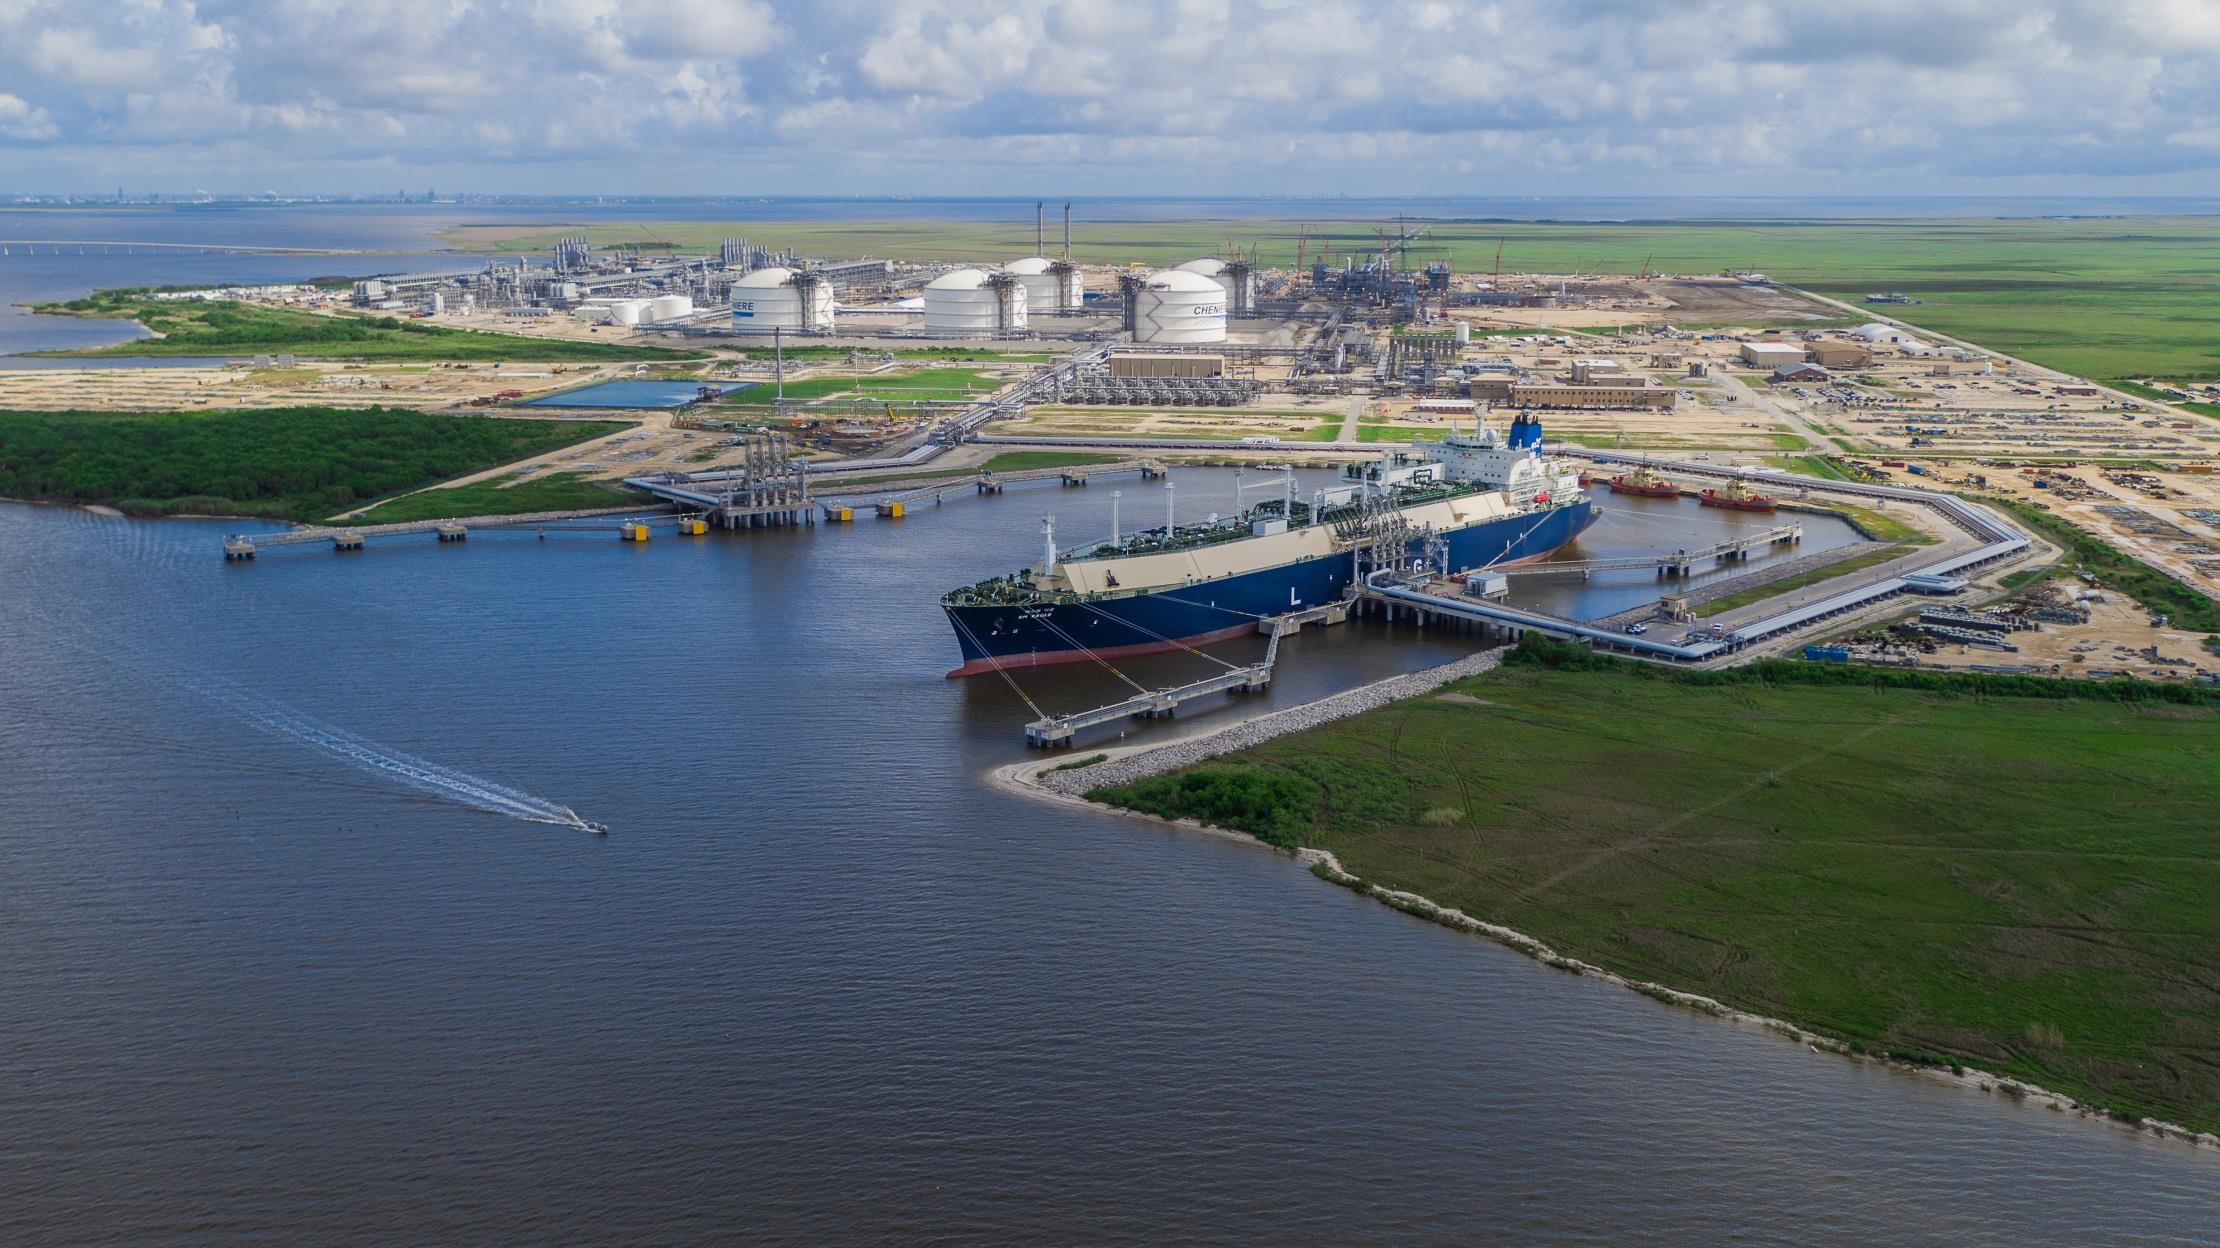 Rystad Energy: which LNG projects can curtail production?